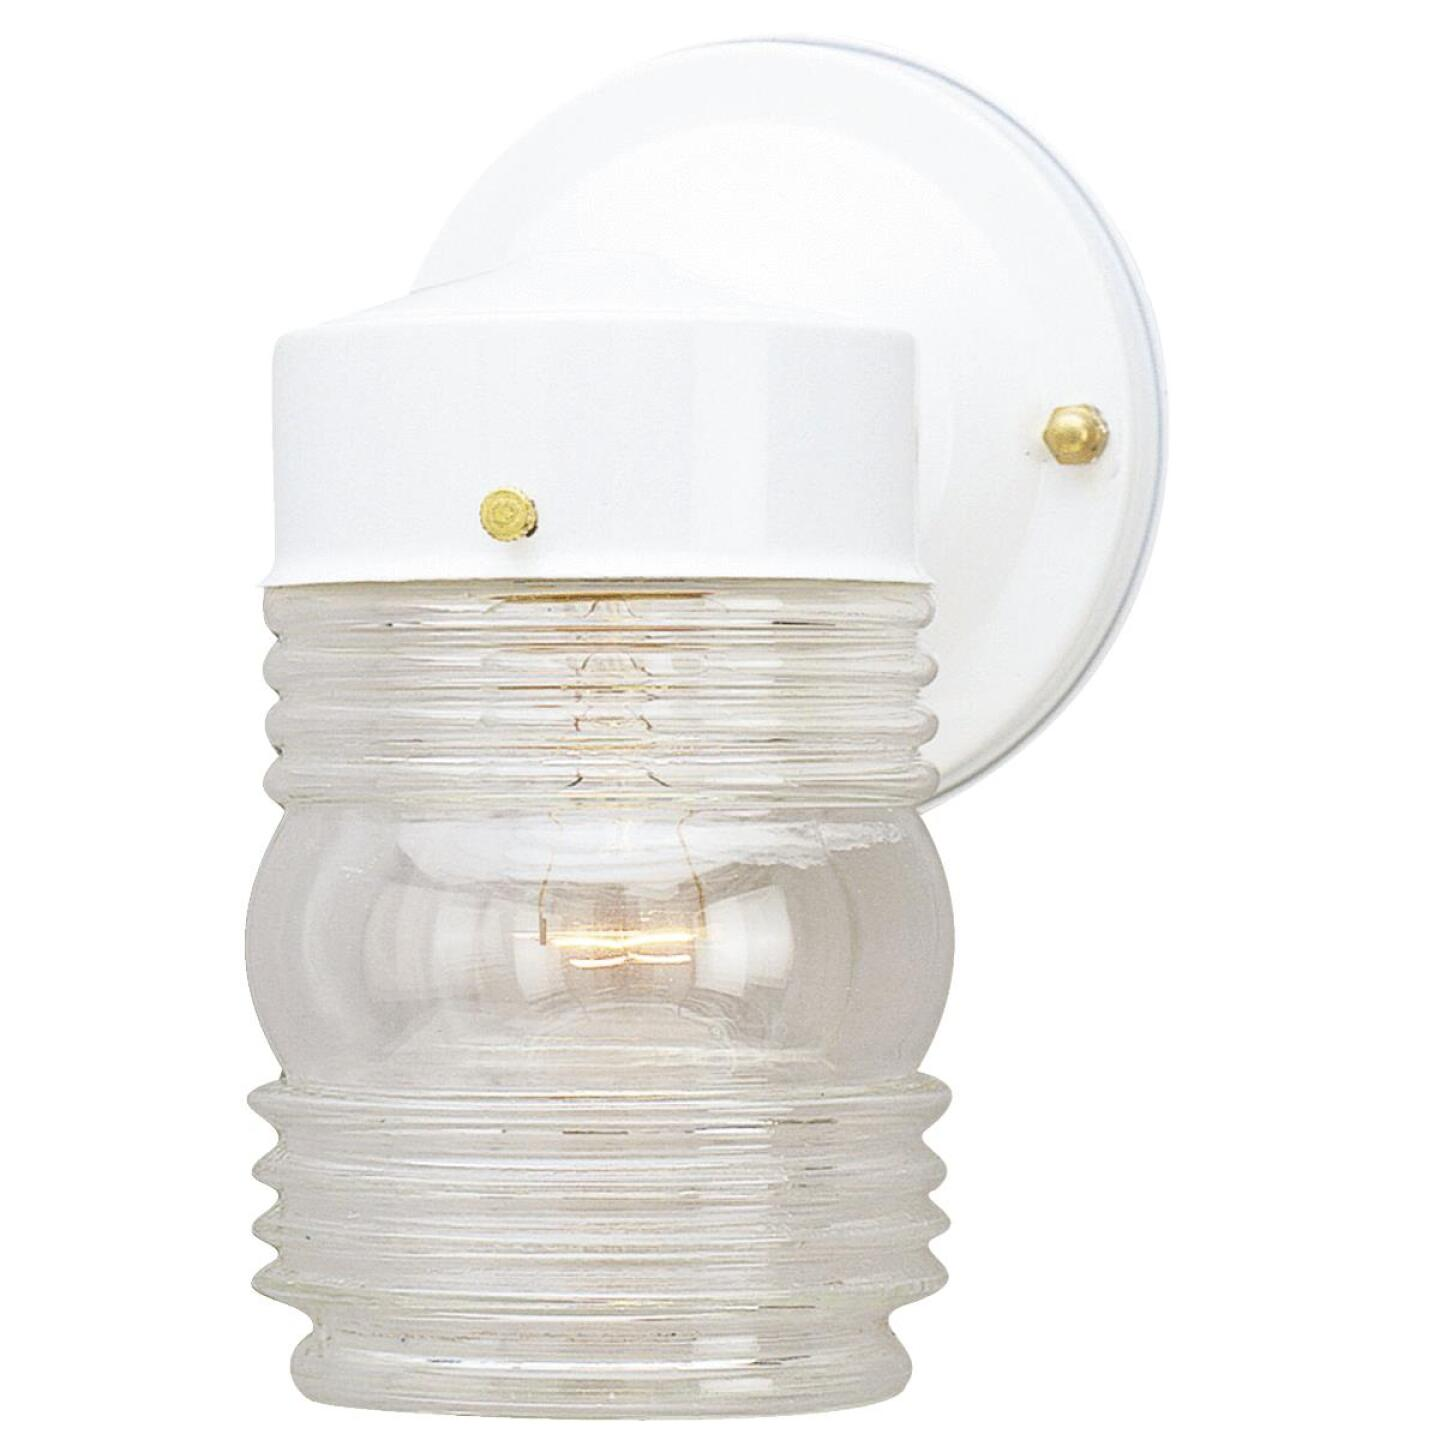 Home Impressions White Incandescent Type A Outdoor Wall Light Fixture Image 1